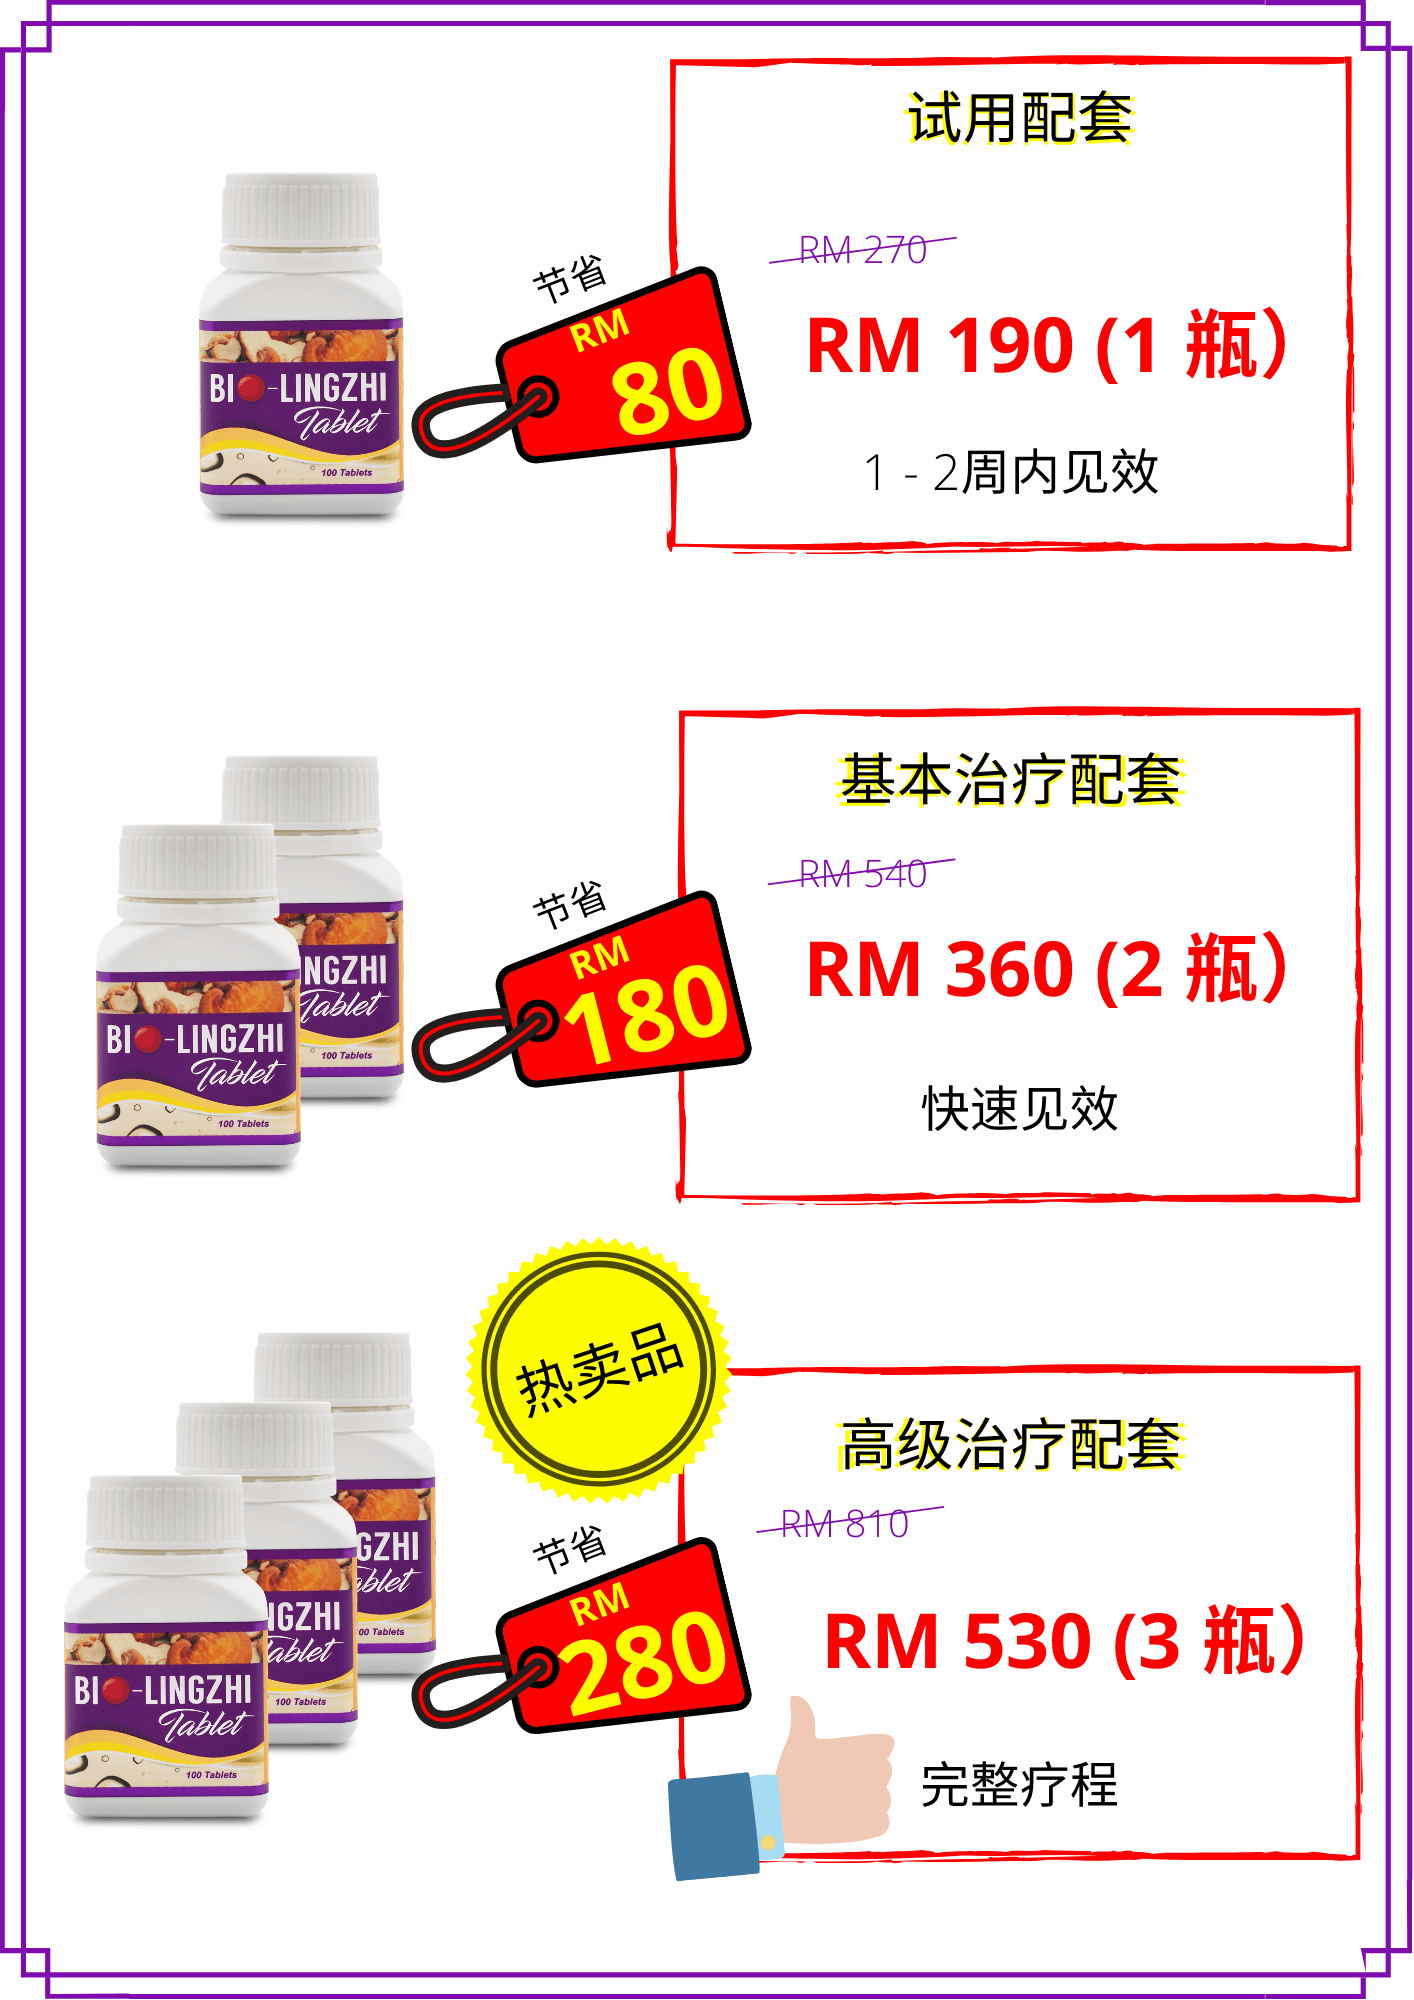 Wellous Bio-LingZhi 2020 Price List in Chinese